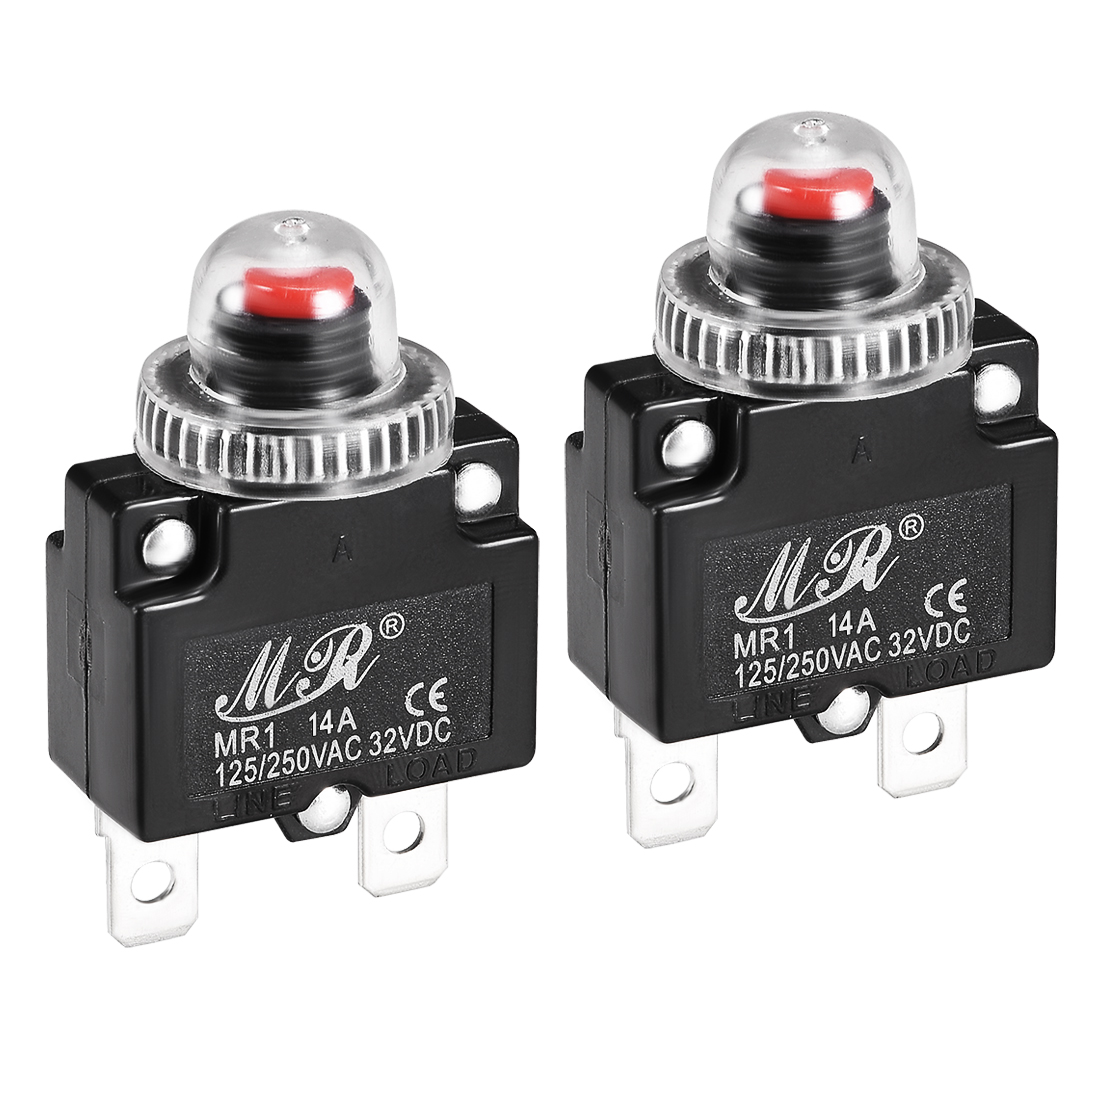 2 Pcs 14A 125/250V Push Button Reset Overload Protector Thermal Circuit Breaker